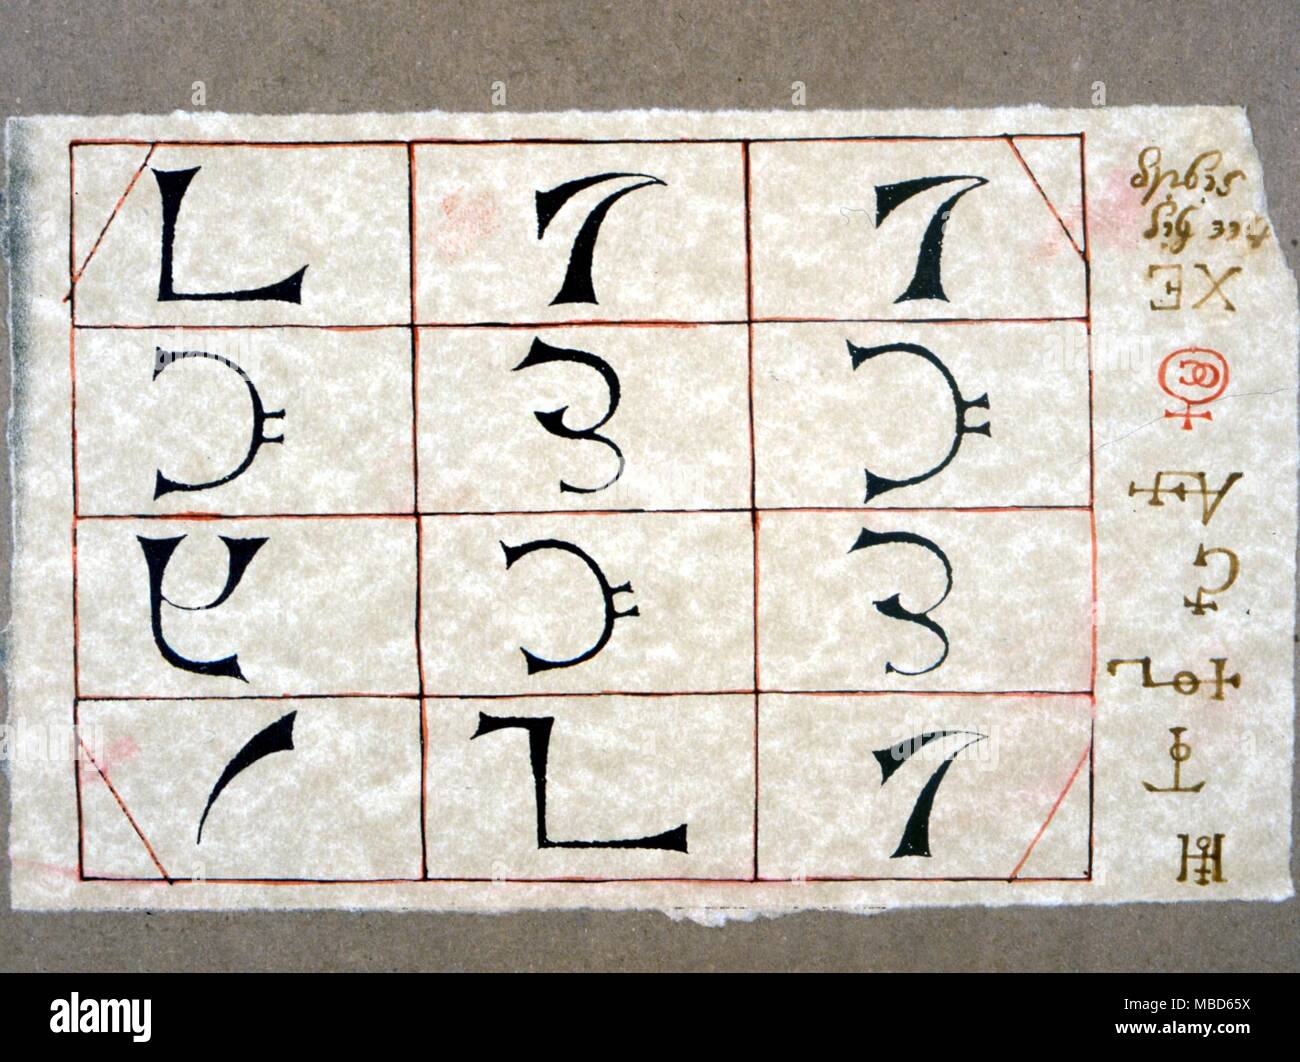 ALPHABETS - By John Dee for evoking spirits  This is detail of plate